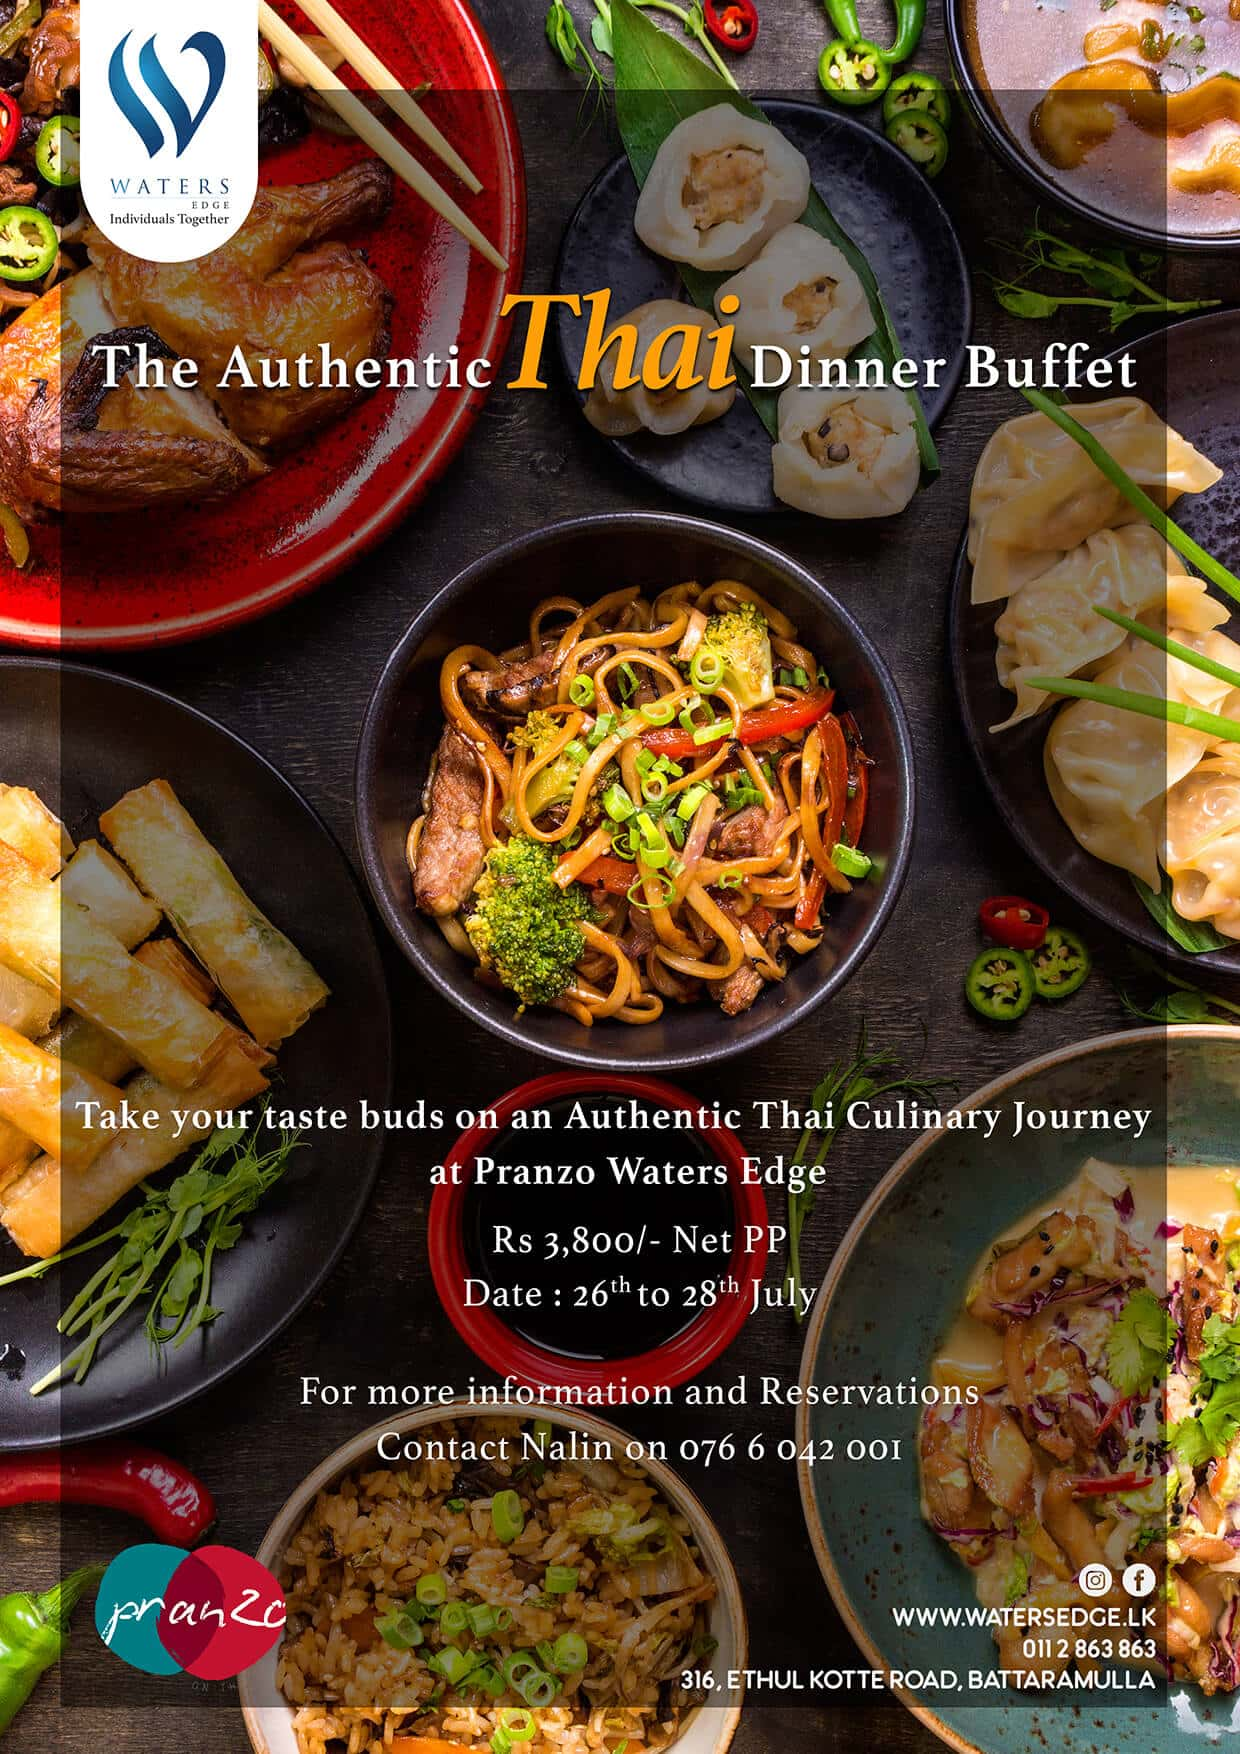 The Authentic Thai Dinner Buffet